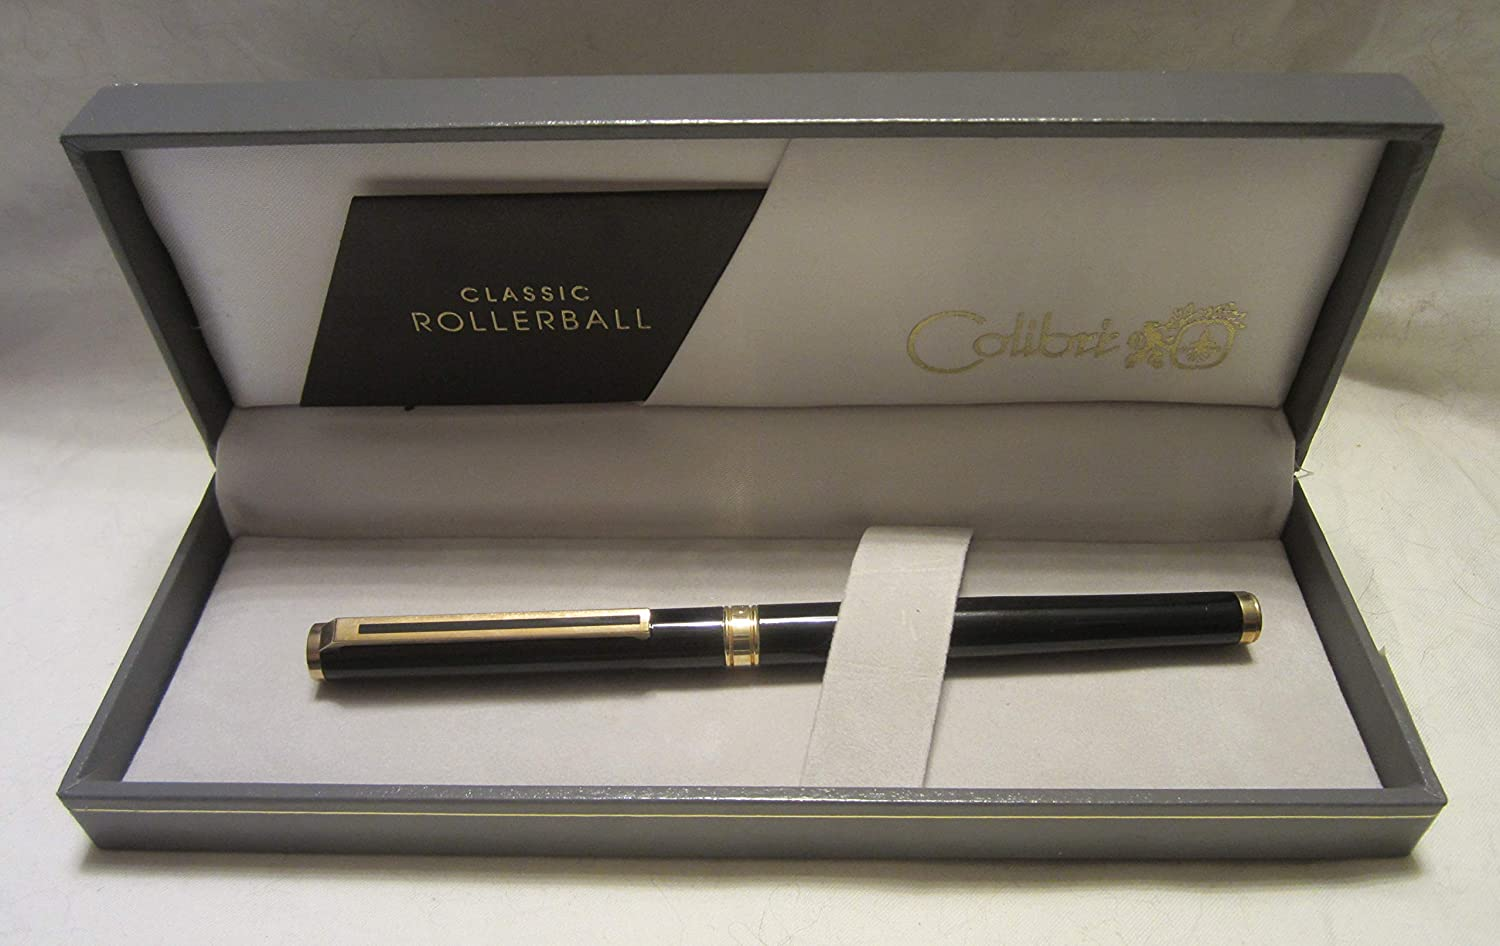 Amazon.com: Colibri Classic Rollerball Pen Black with Gold ...